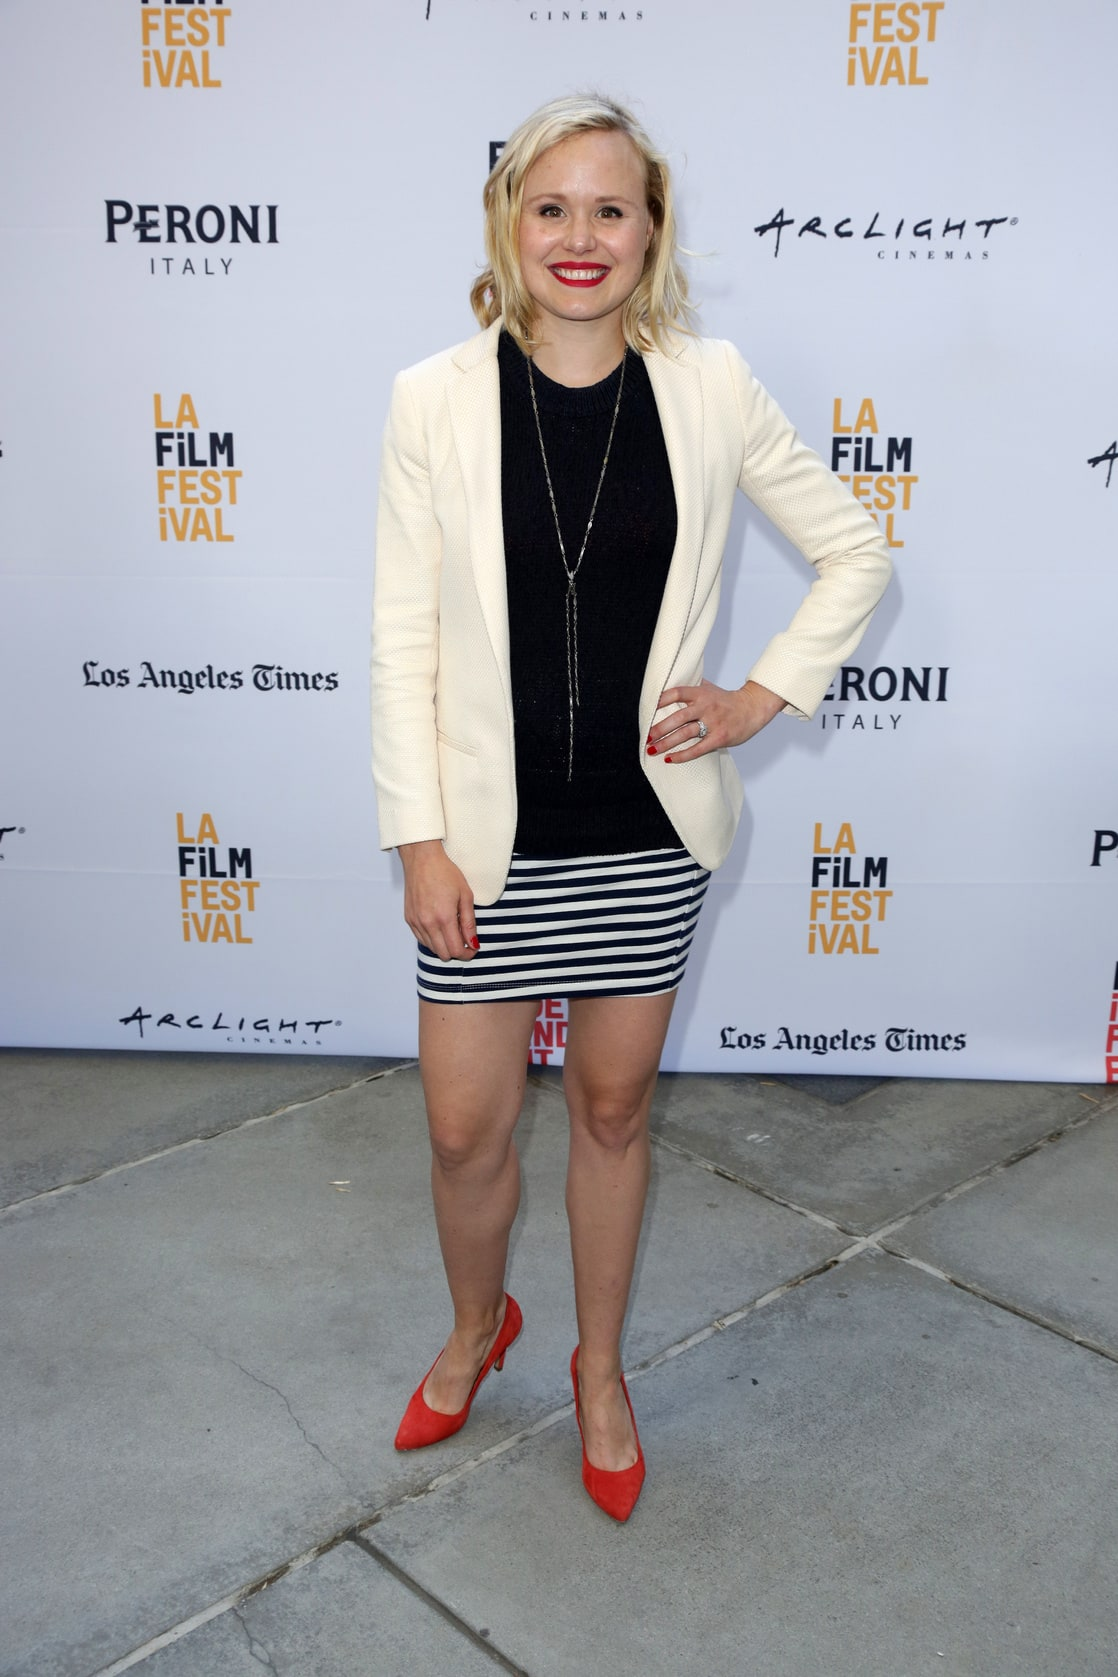 Image result for ALISON PILL